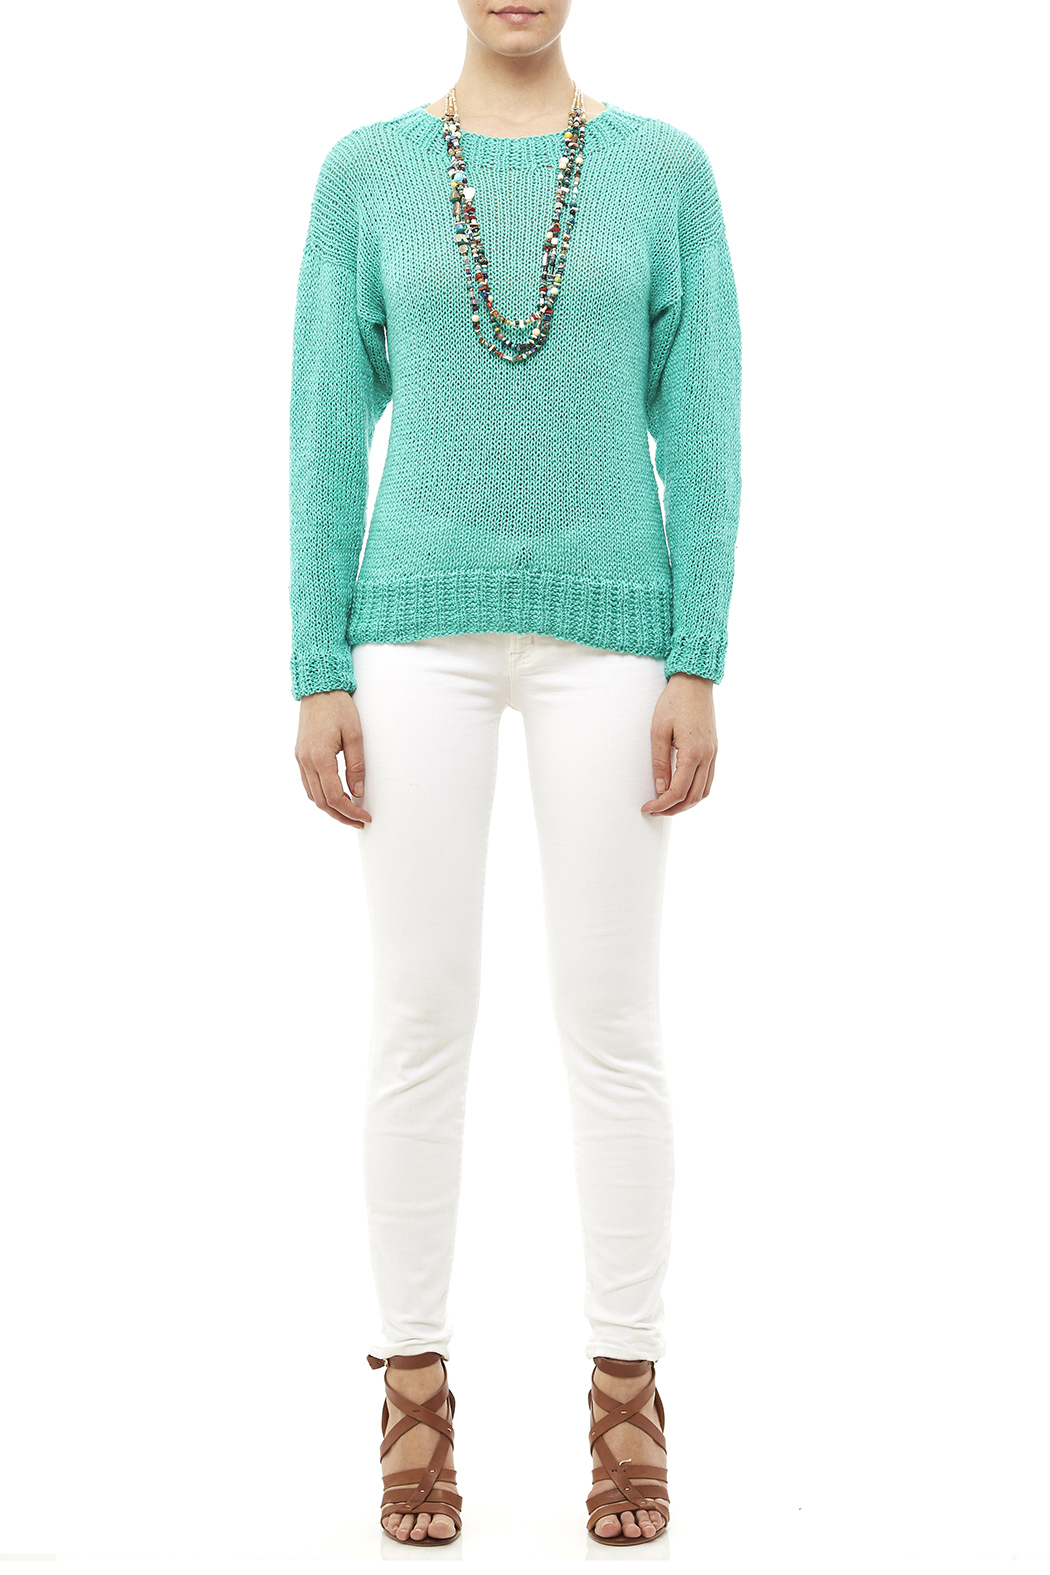 DC KNITS Comfy Cotton Turquoise Sweater from New Mexico — Shoptiques 64b3e79e6